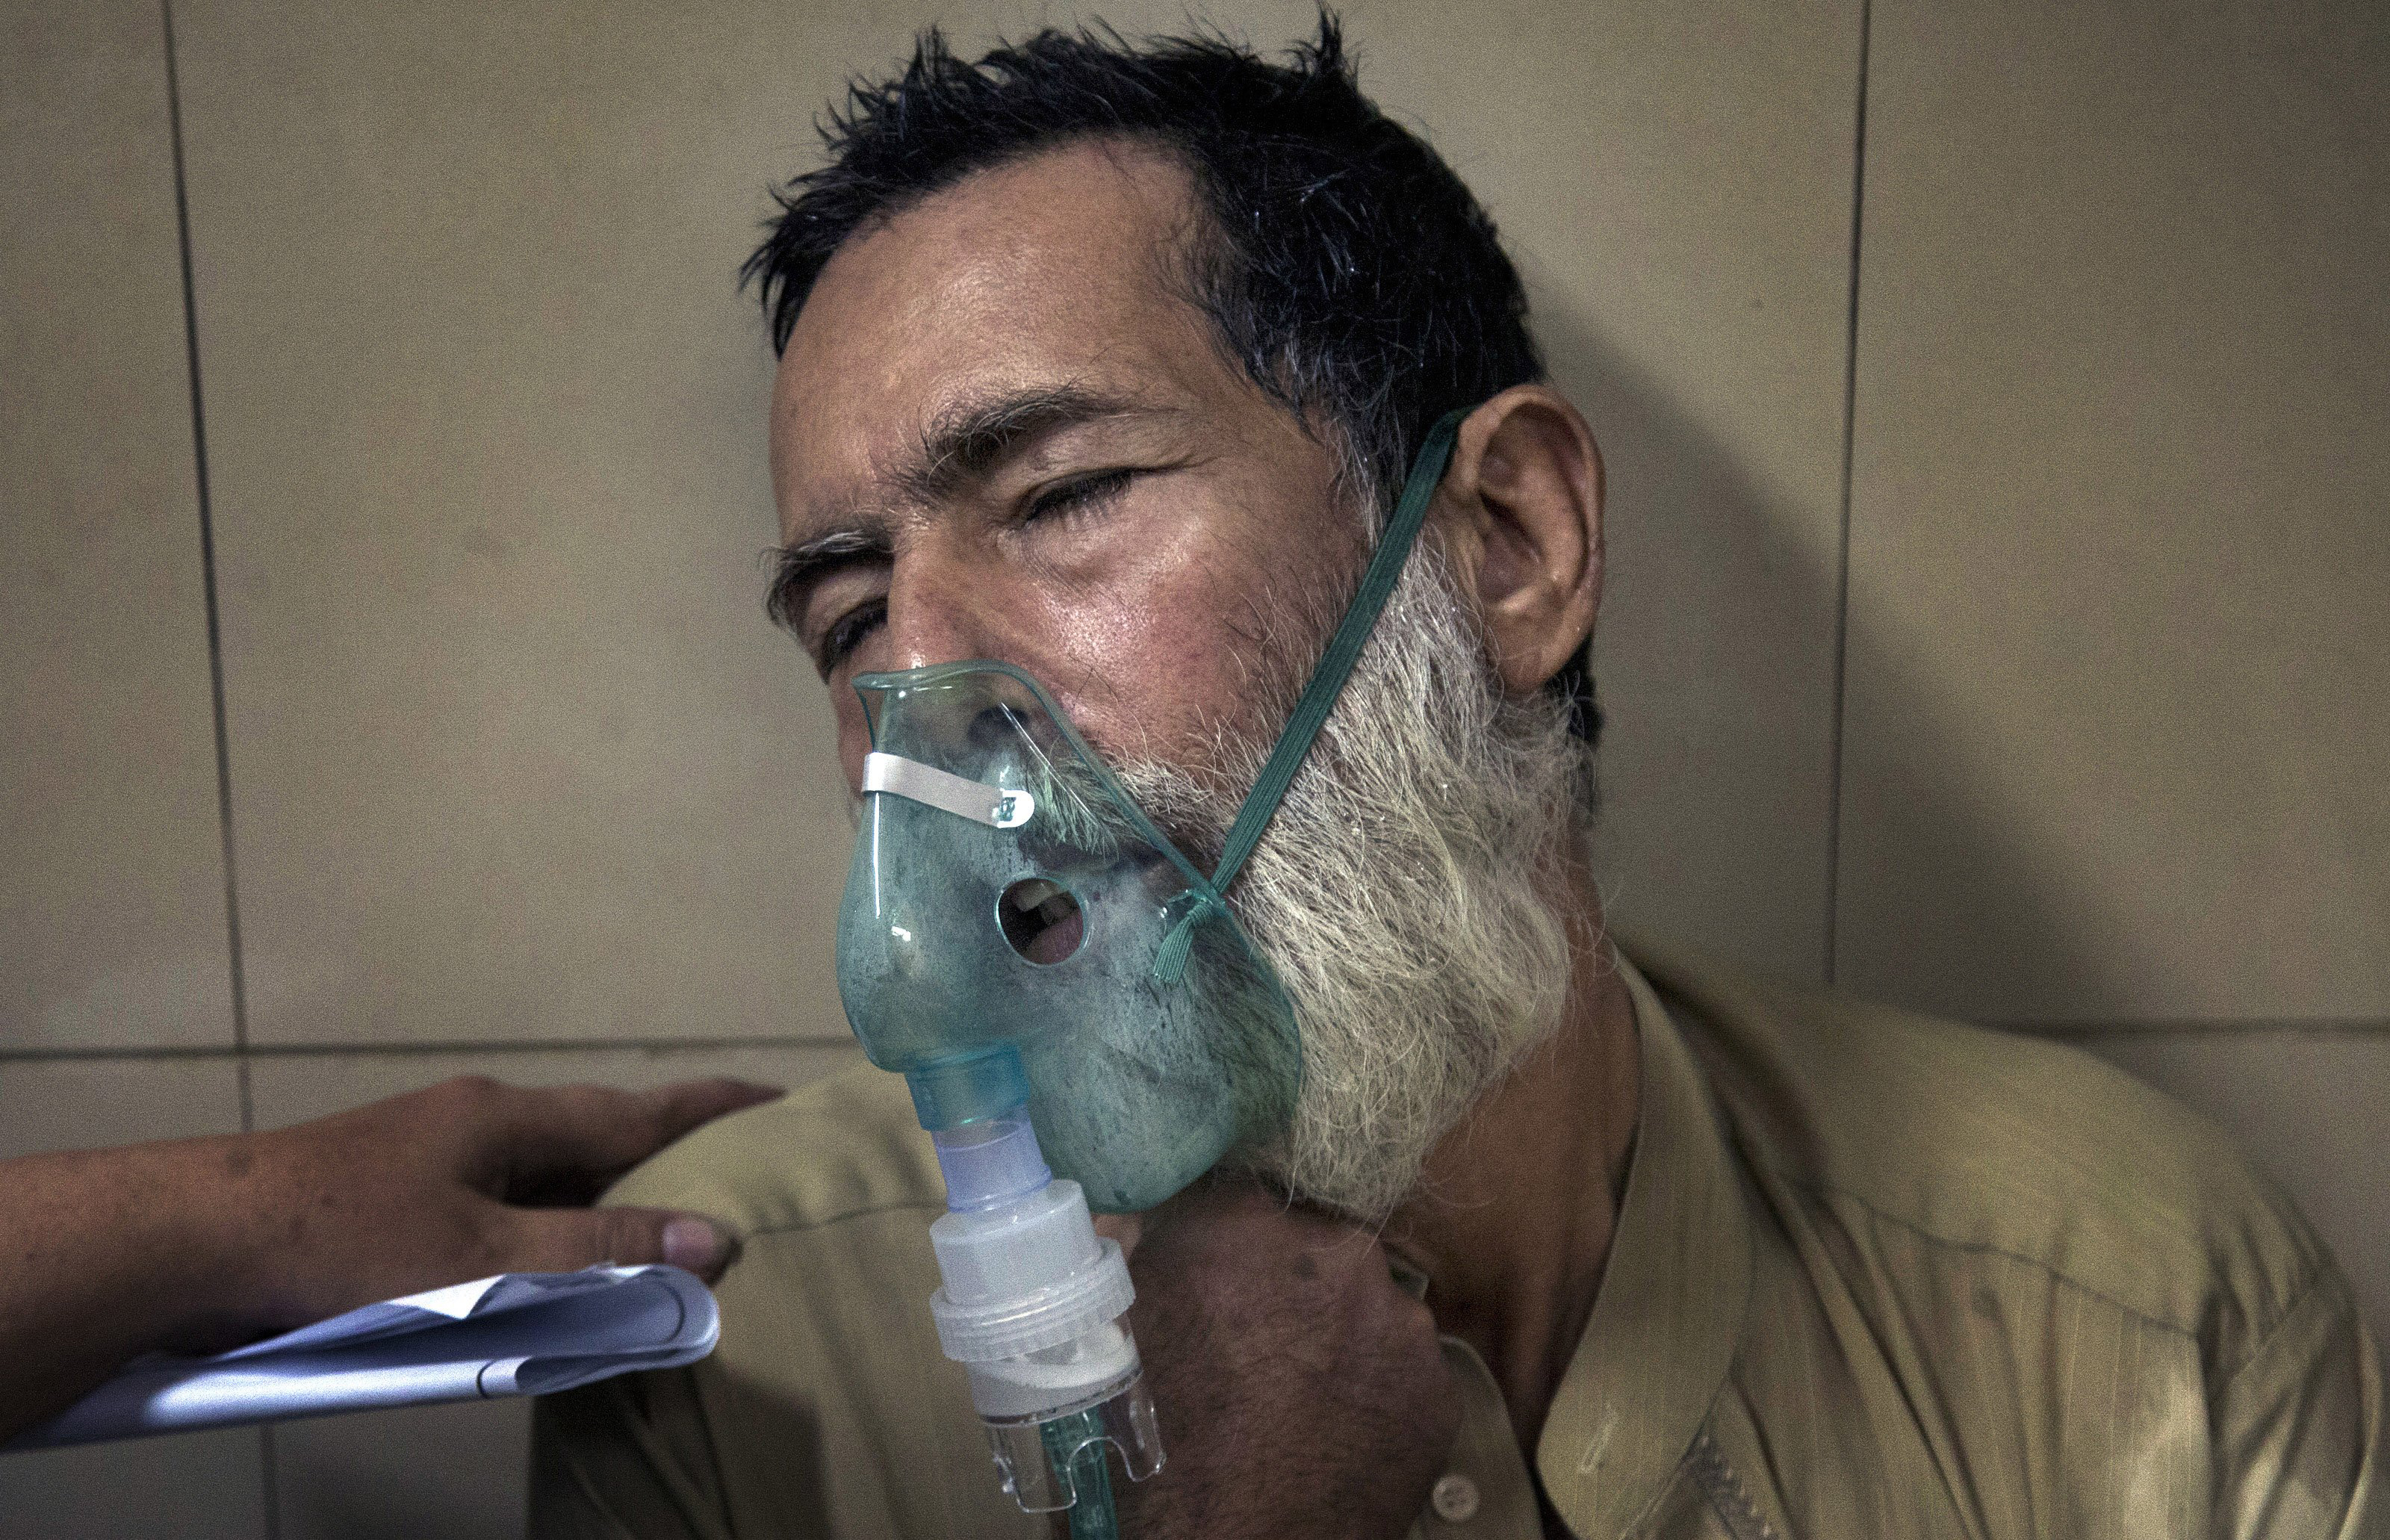 A Pakistani patient suffering from a heatstroke receives treatment at a local hospital in Karachi, Pakistan, on June 24, 2015.